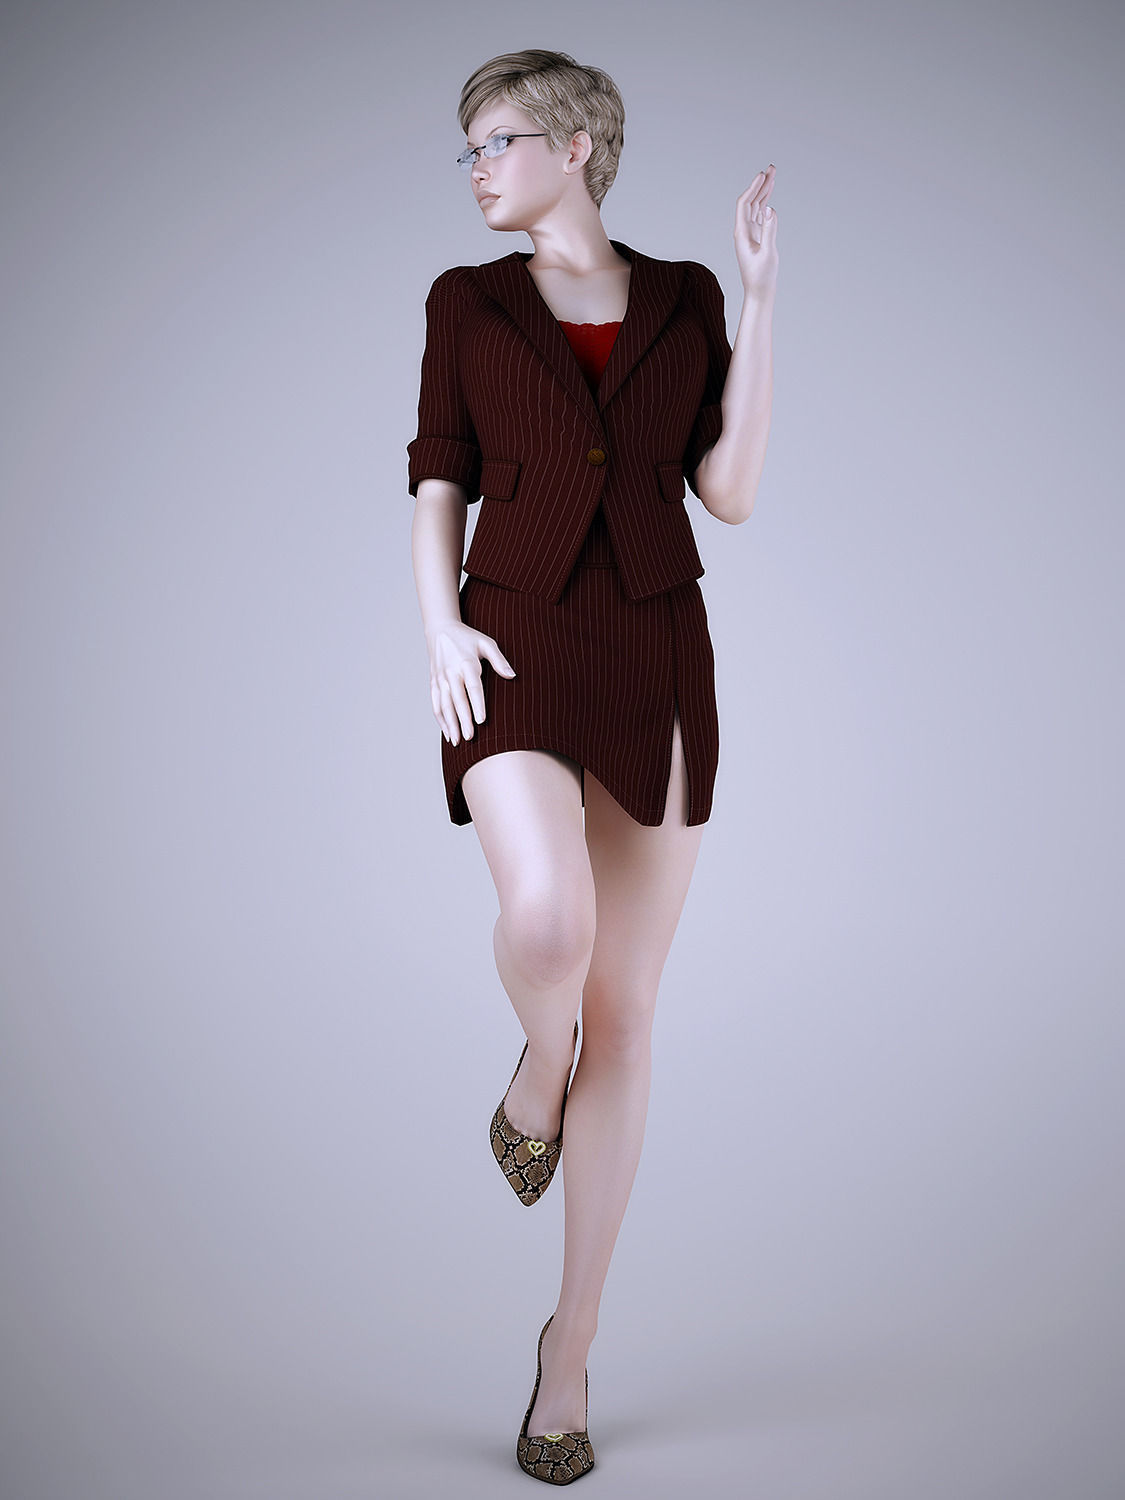 3d Models For Poser And Daz Studio: Wear Work Uniforms Office Girl 3D Model MAX OBJ FBX